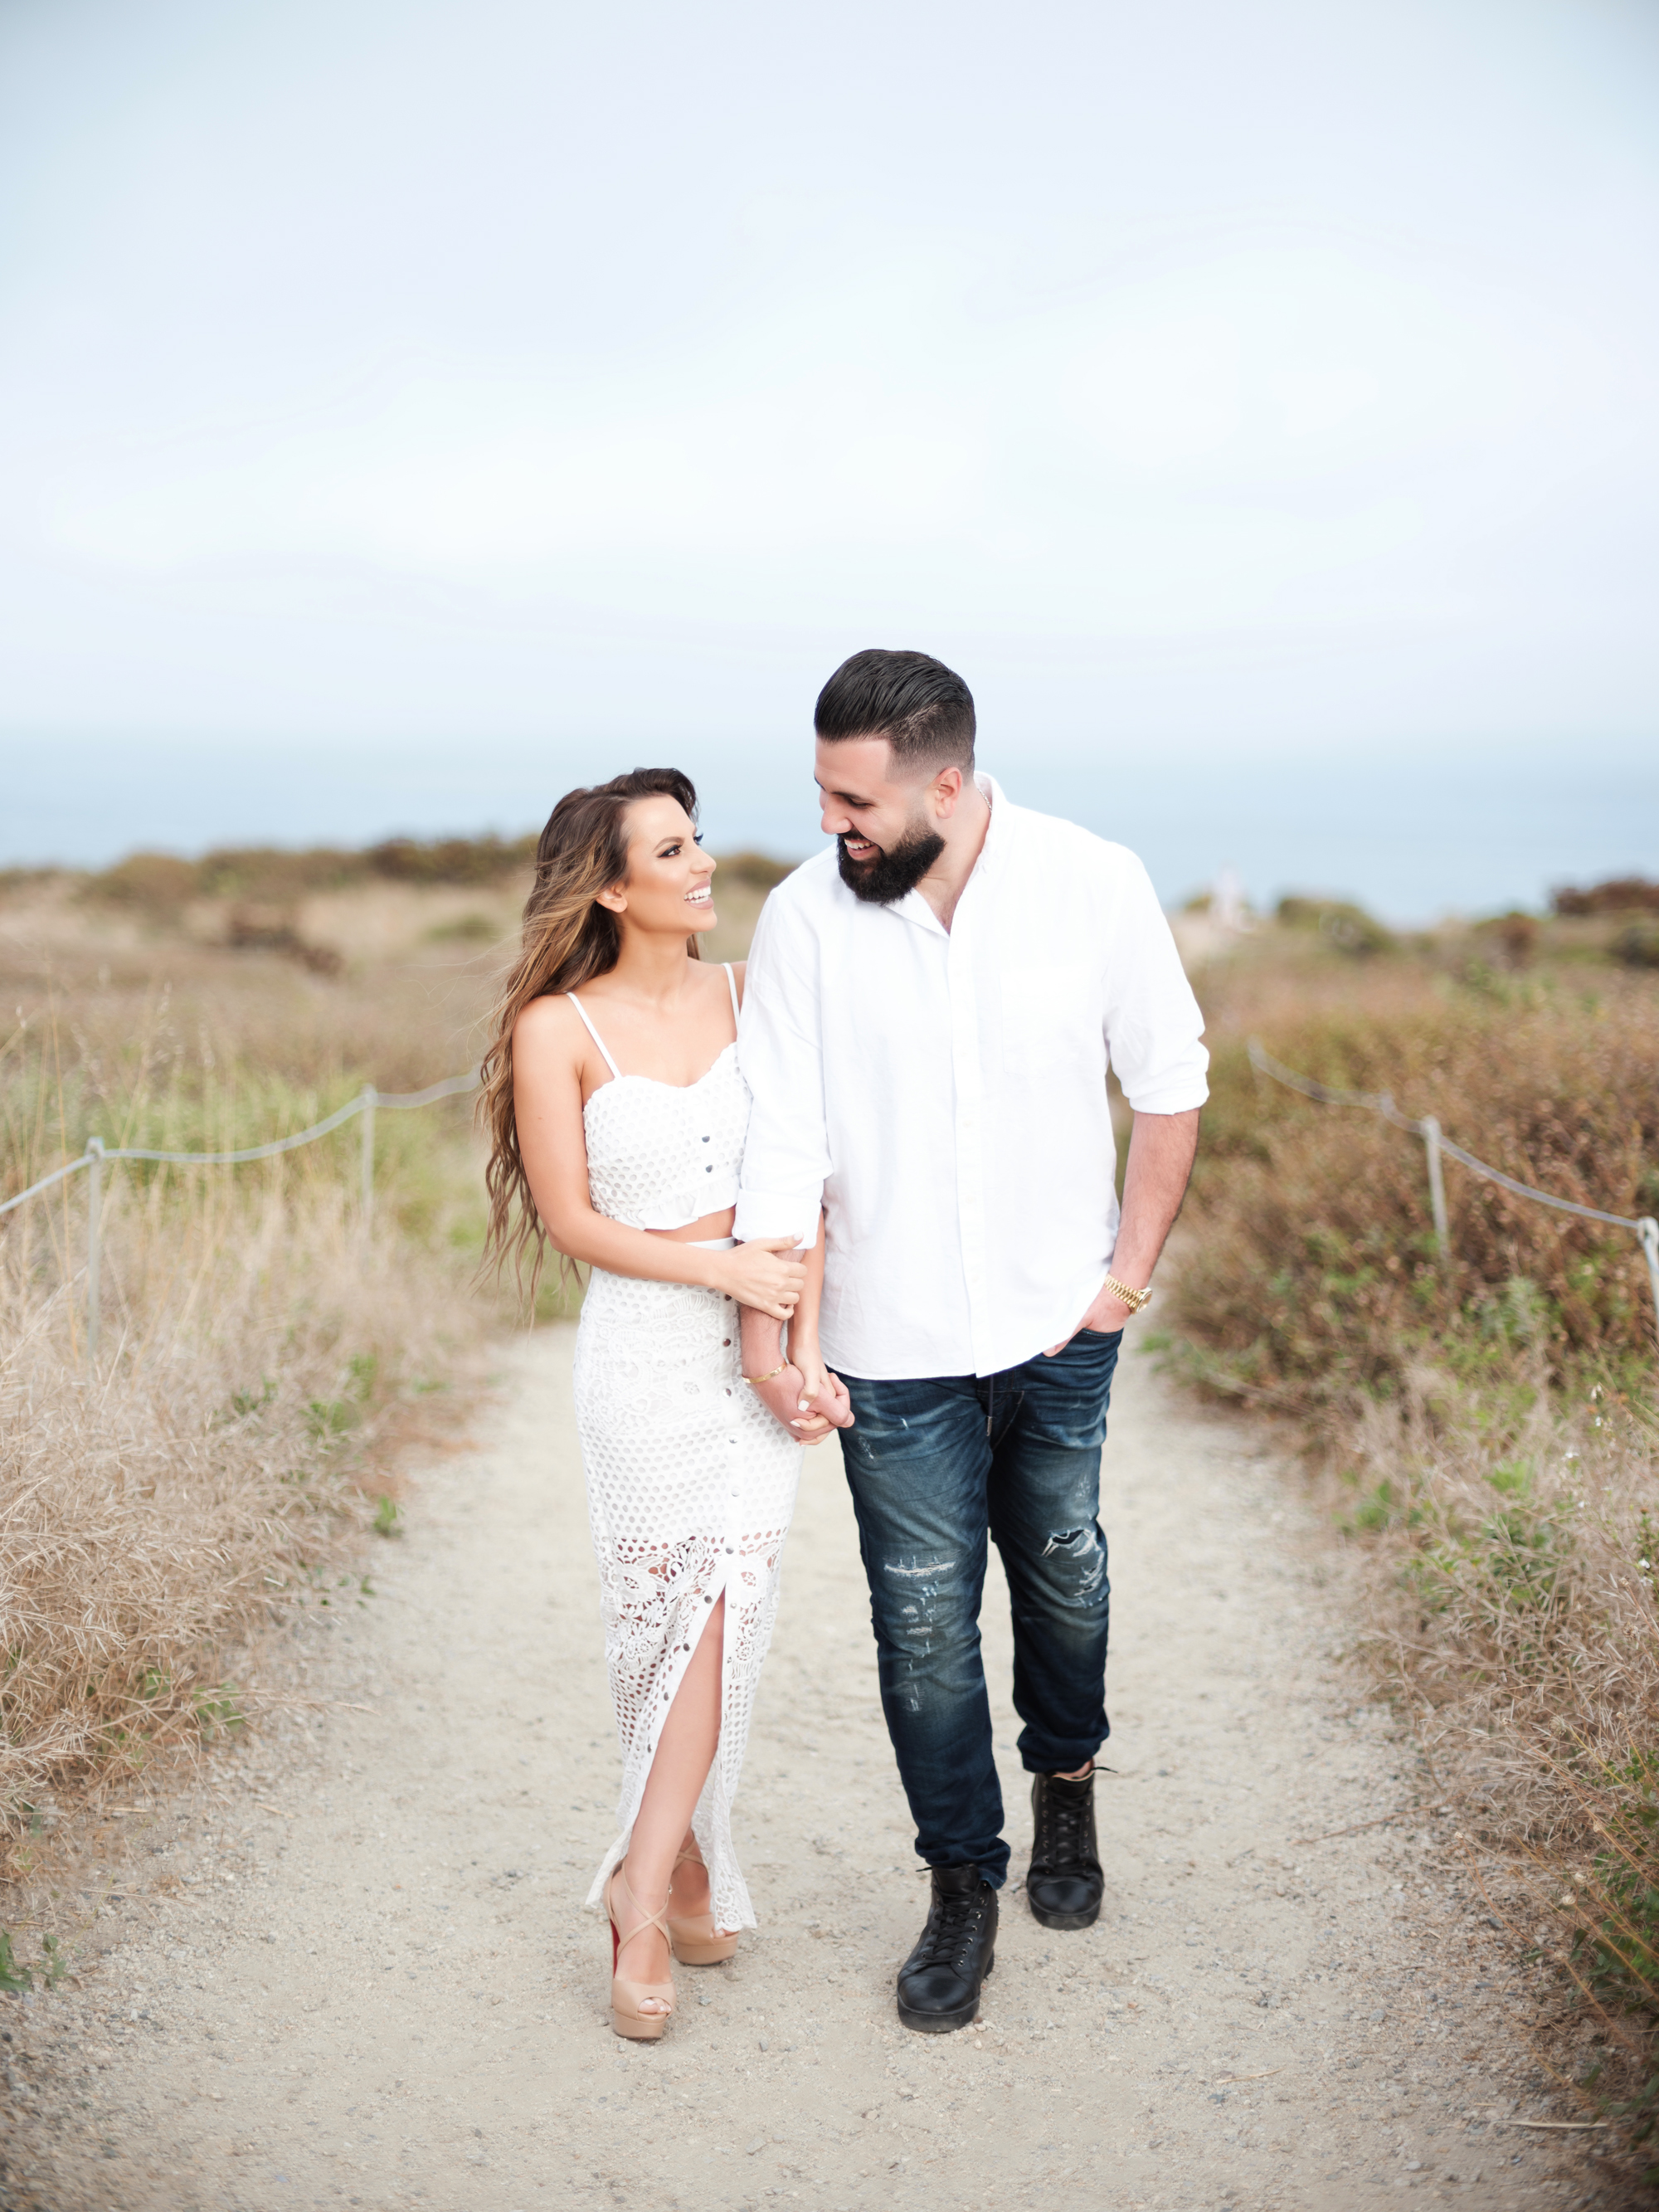 Malibu engagement session in Los Angeles for their wedding